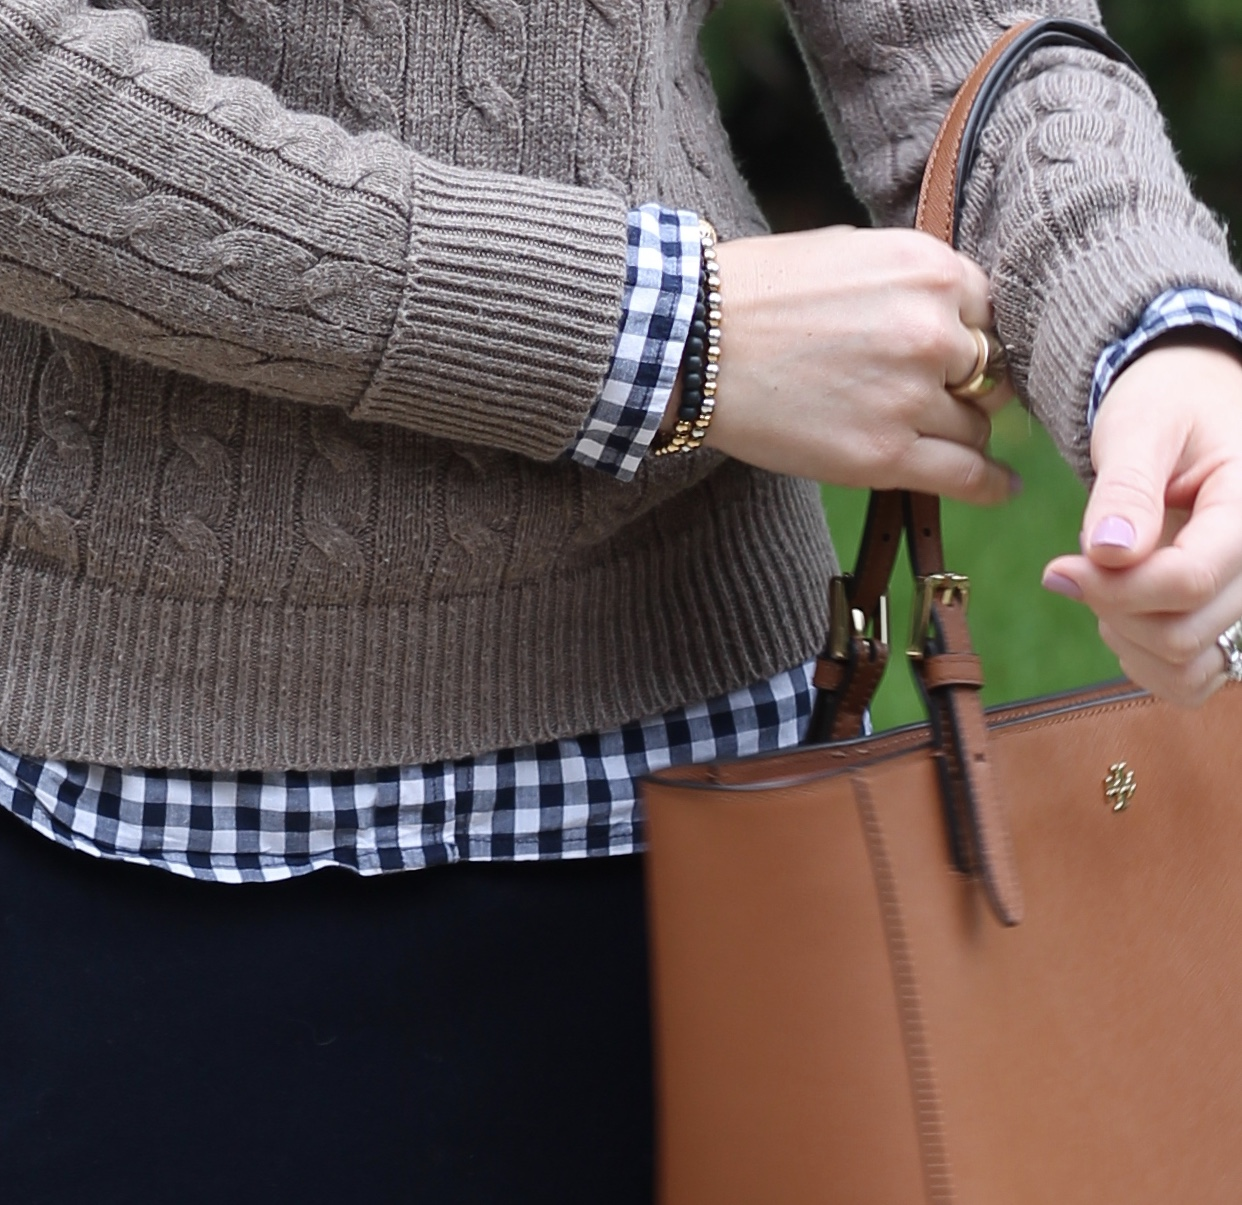 gingham button up, tan camel cable knit sweater, navy pencil skirt, cognac riding boots, Tory Burch tote